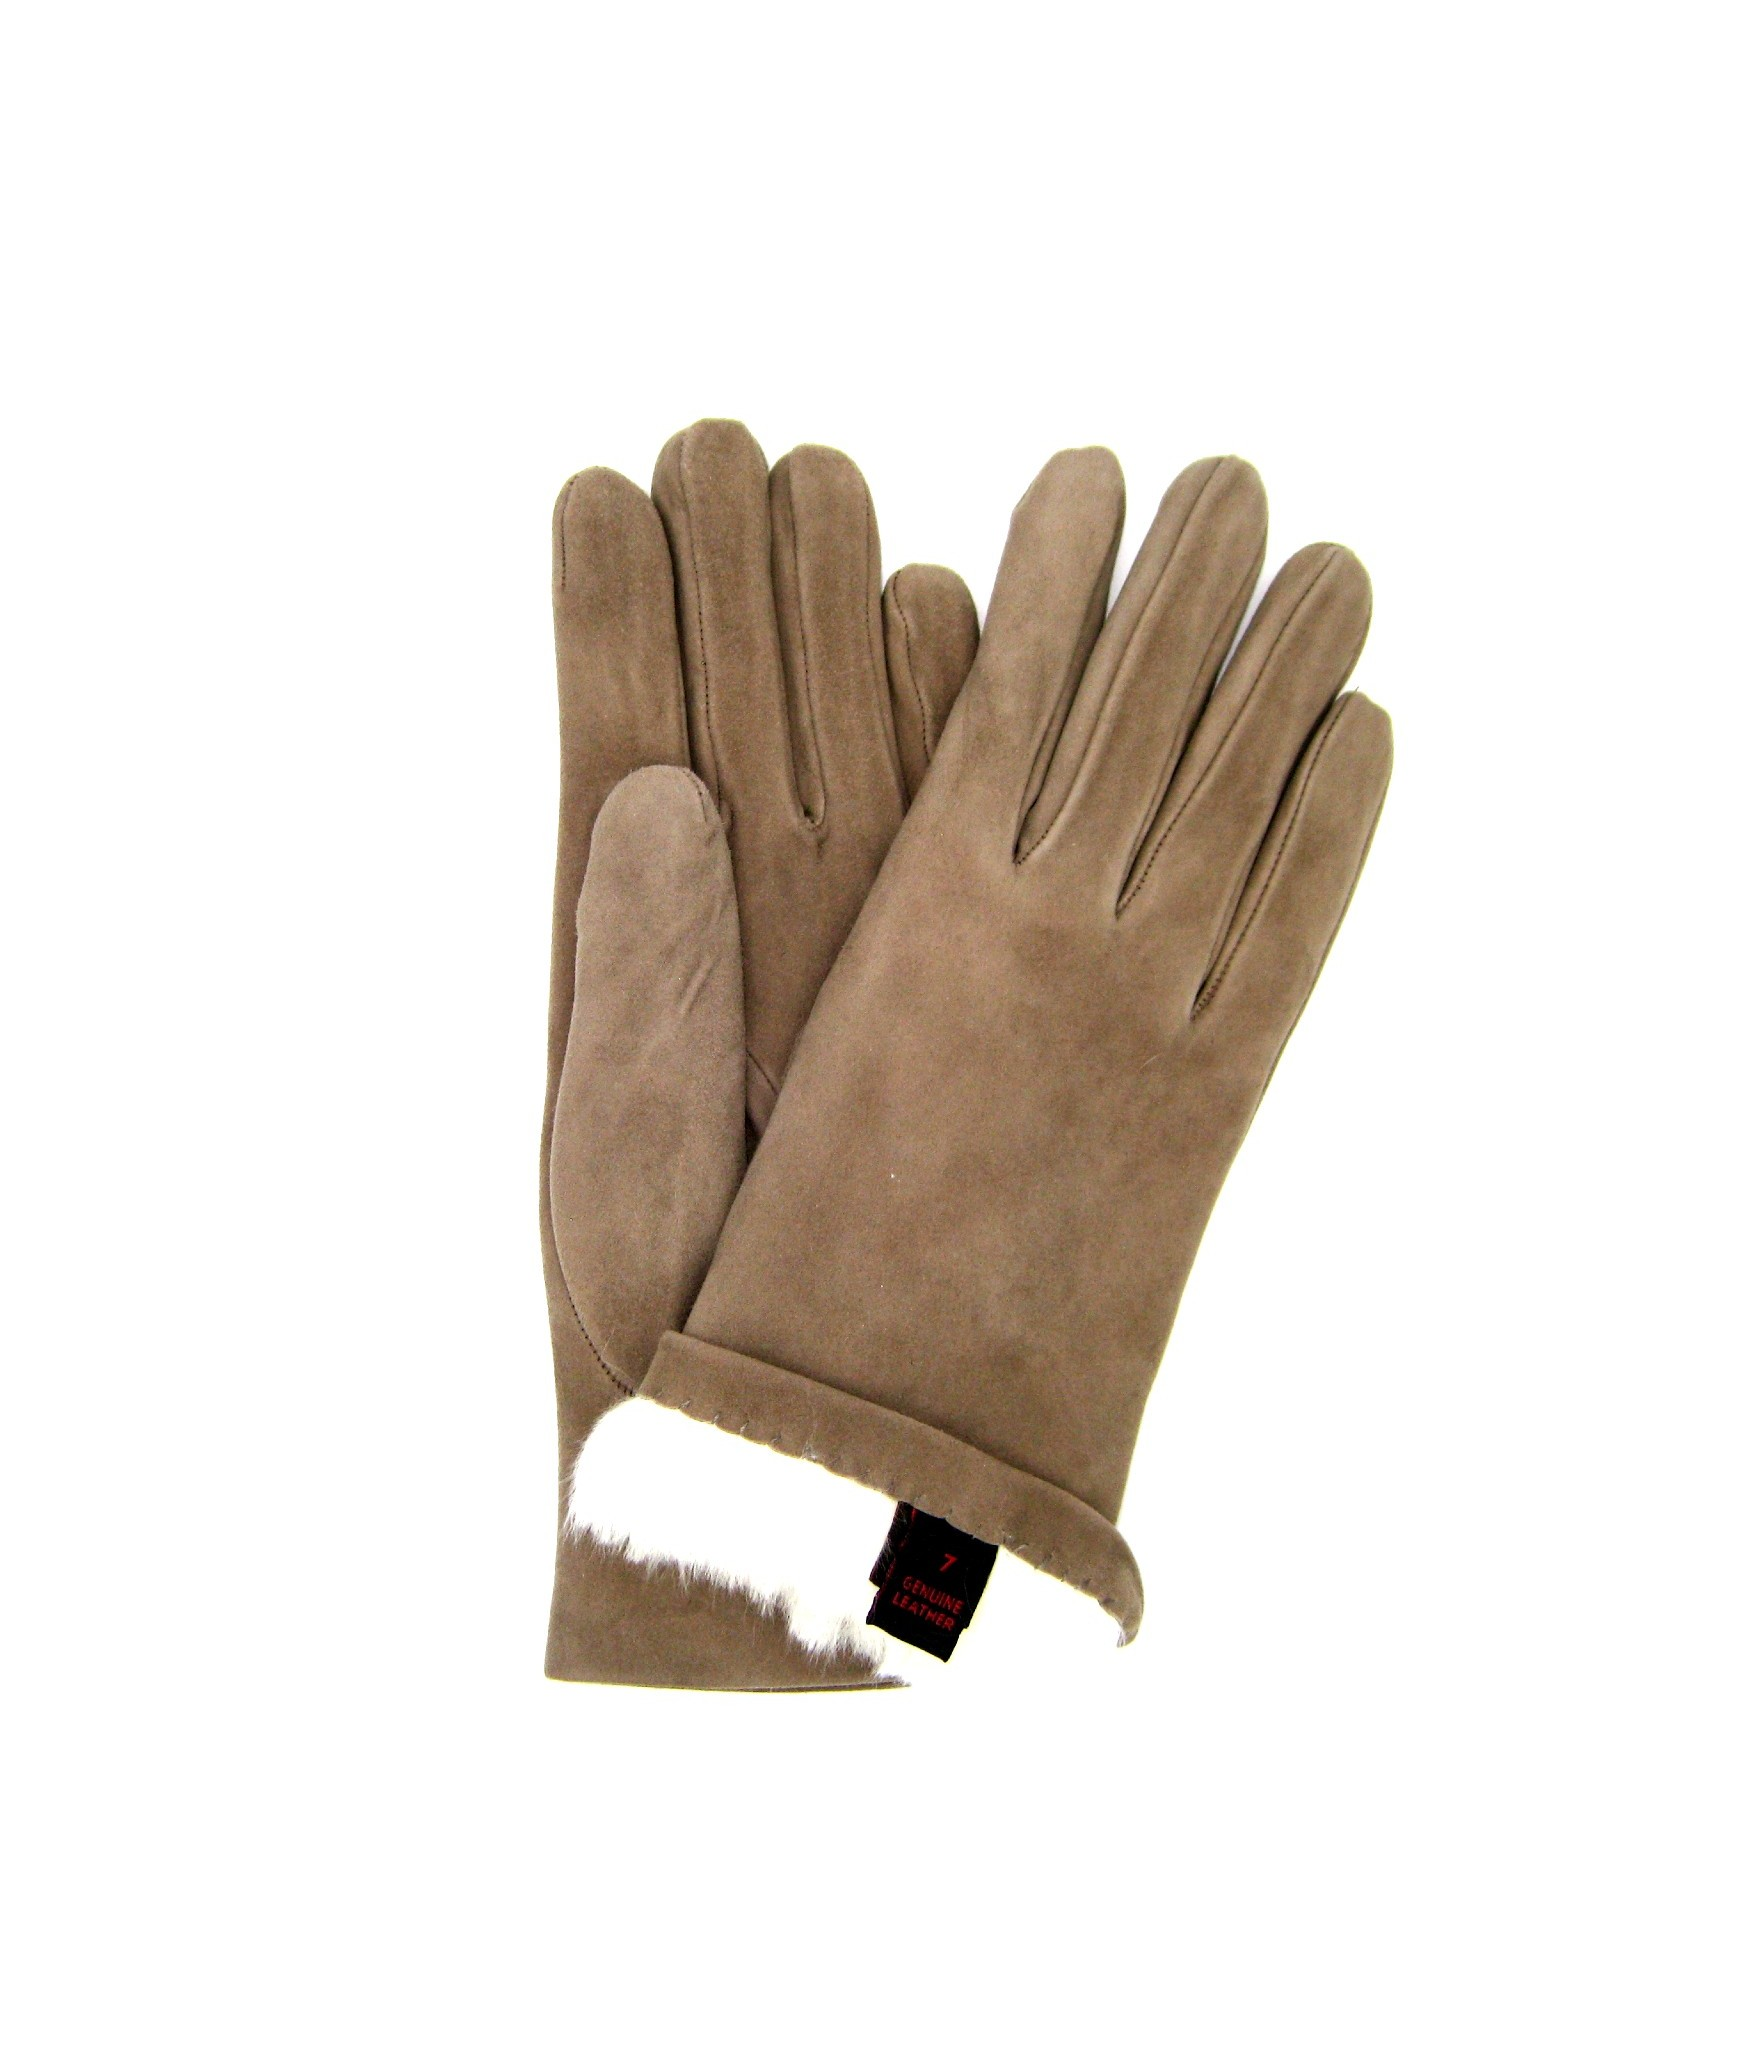 Suede Nappa leather gloves 2bt Rabbit fur lined Taupe Sermoneta